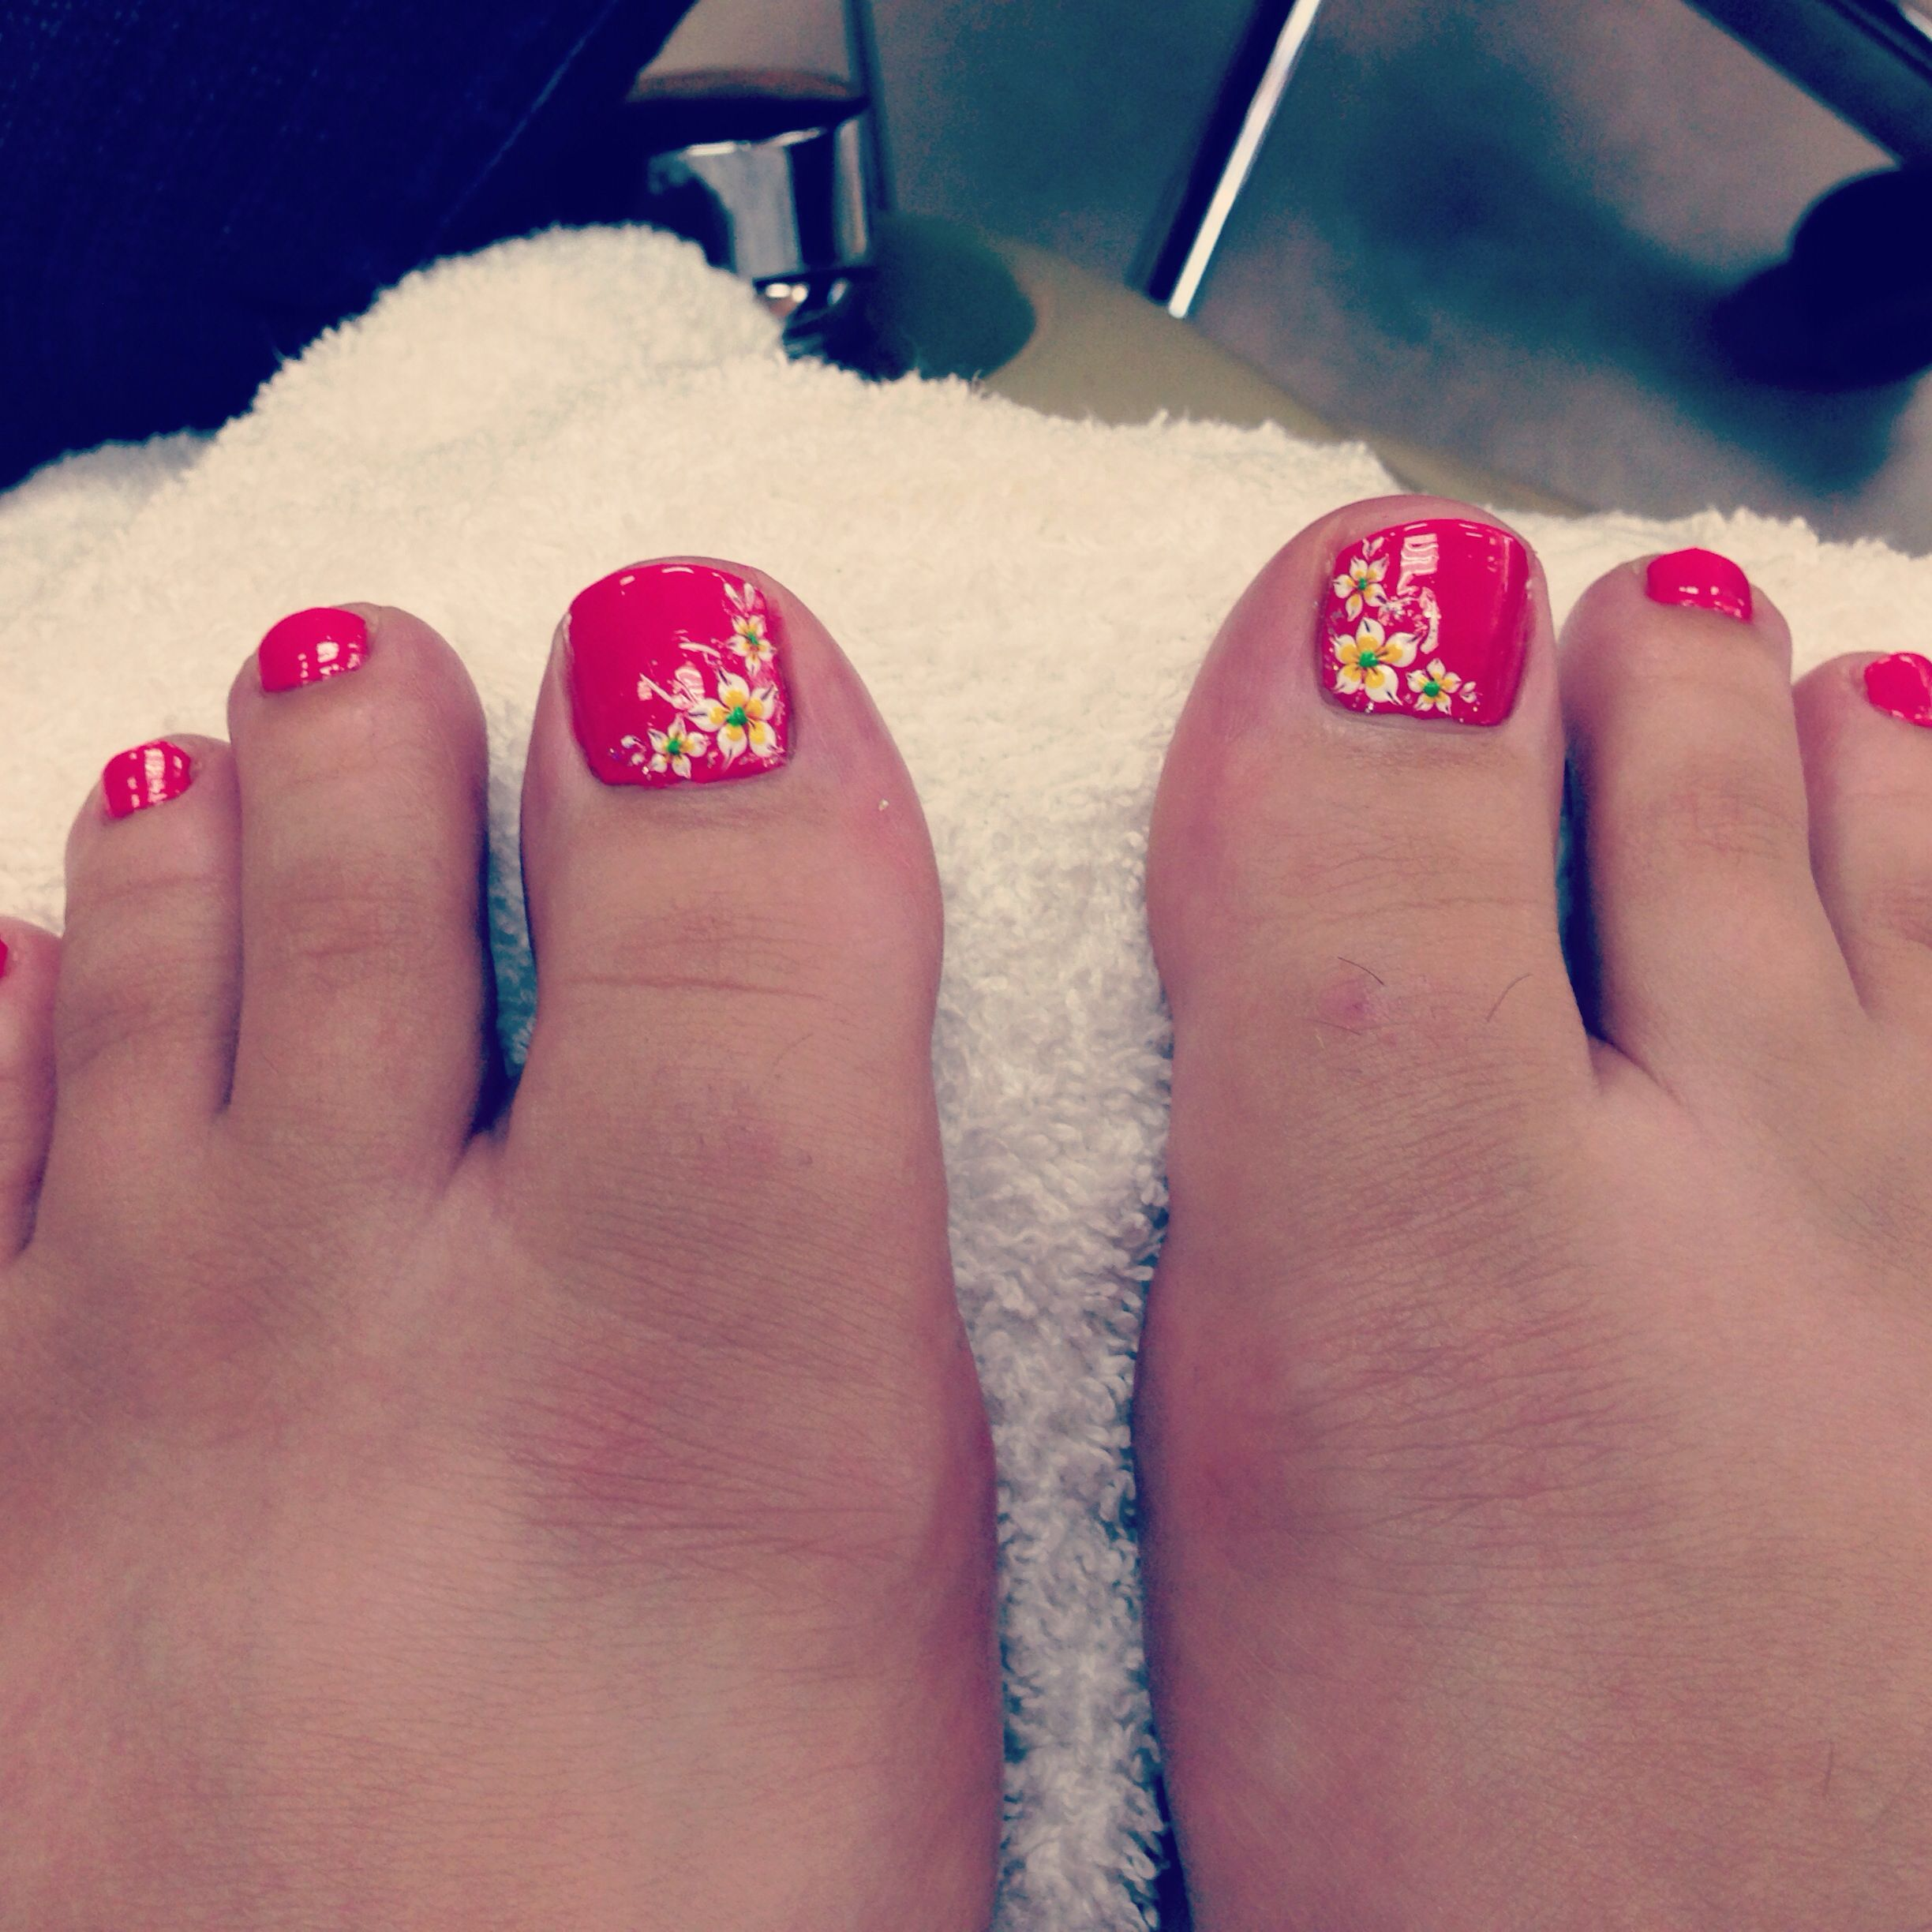 Pin By Leesa Helmlinger On Nails Hawaiian Nails Toe Nail Designs Toe Nails